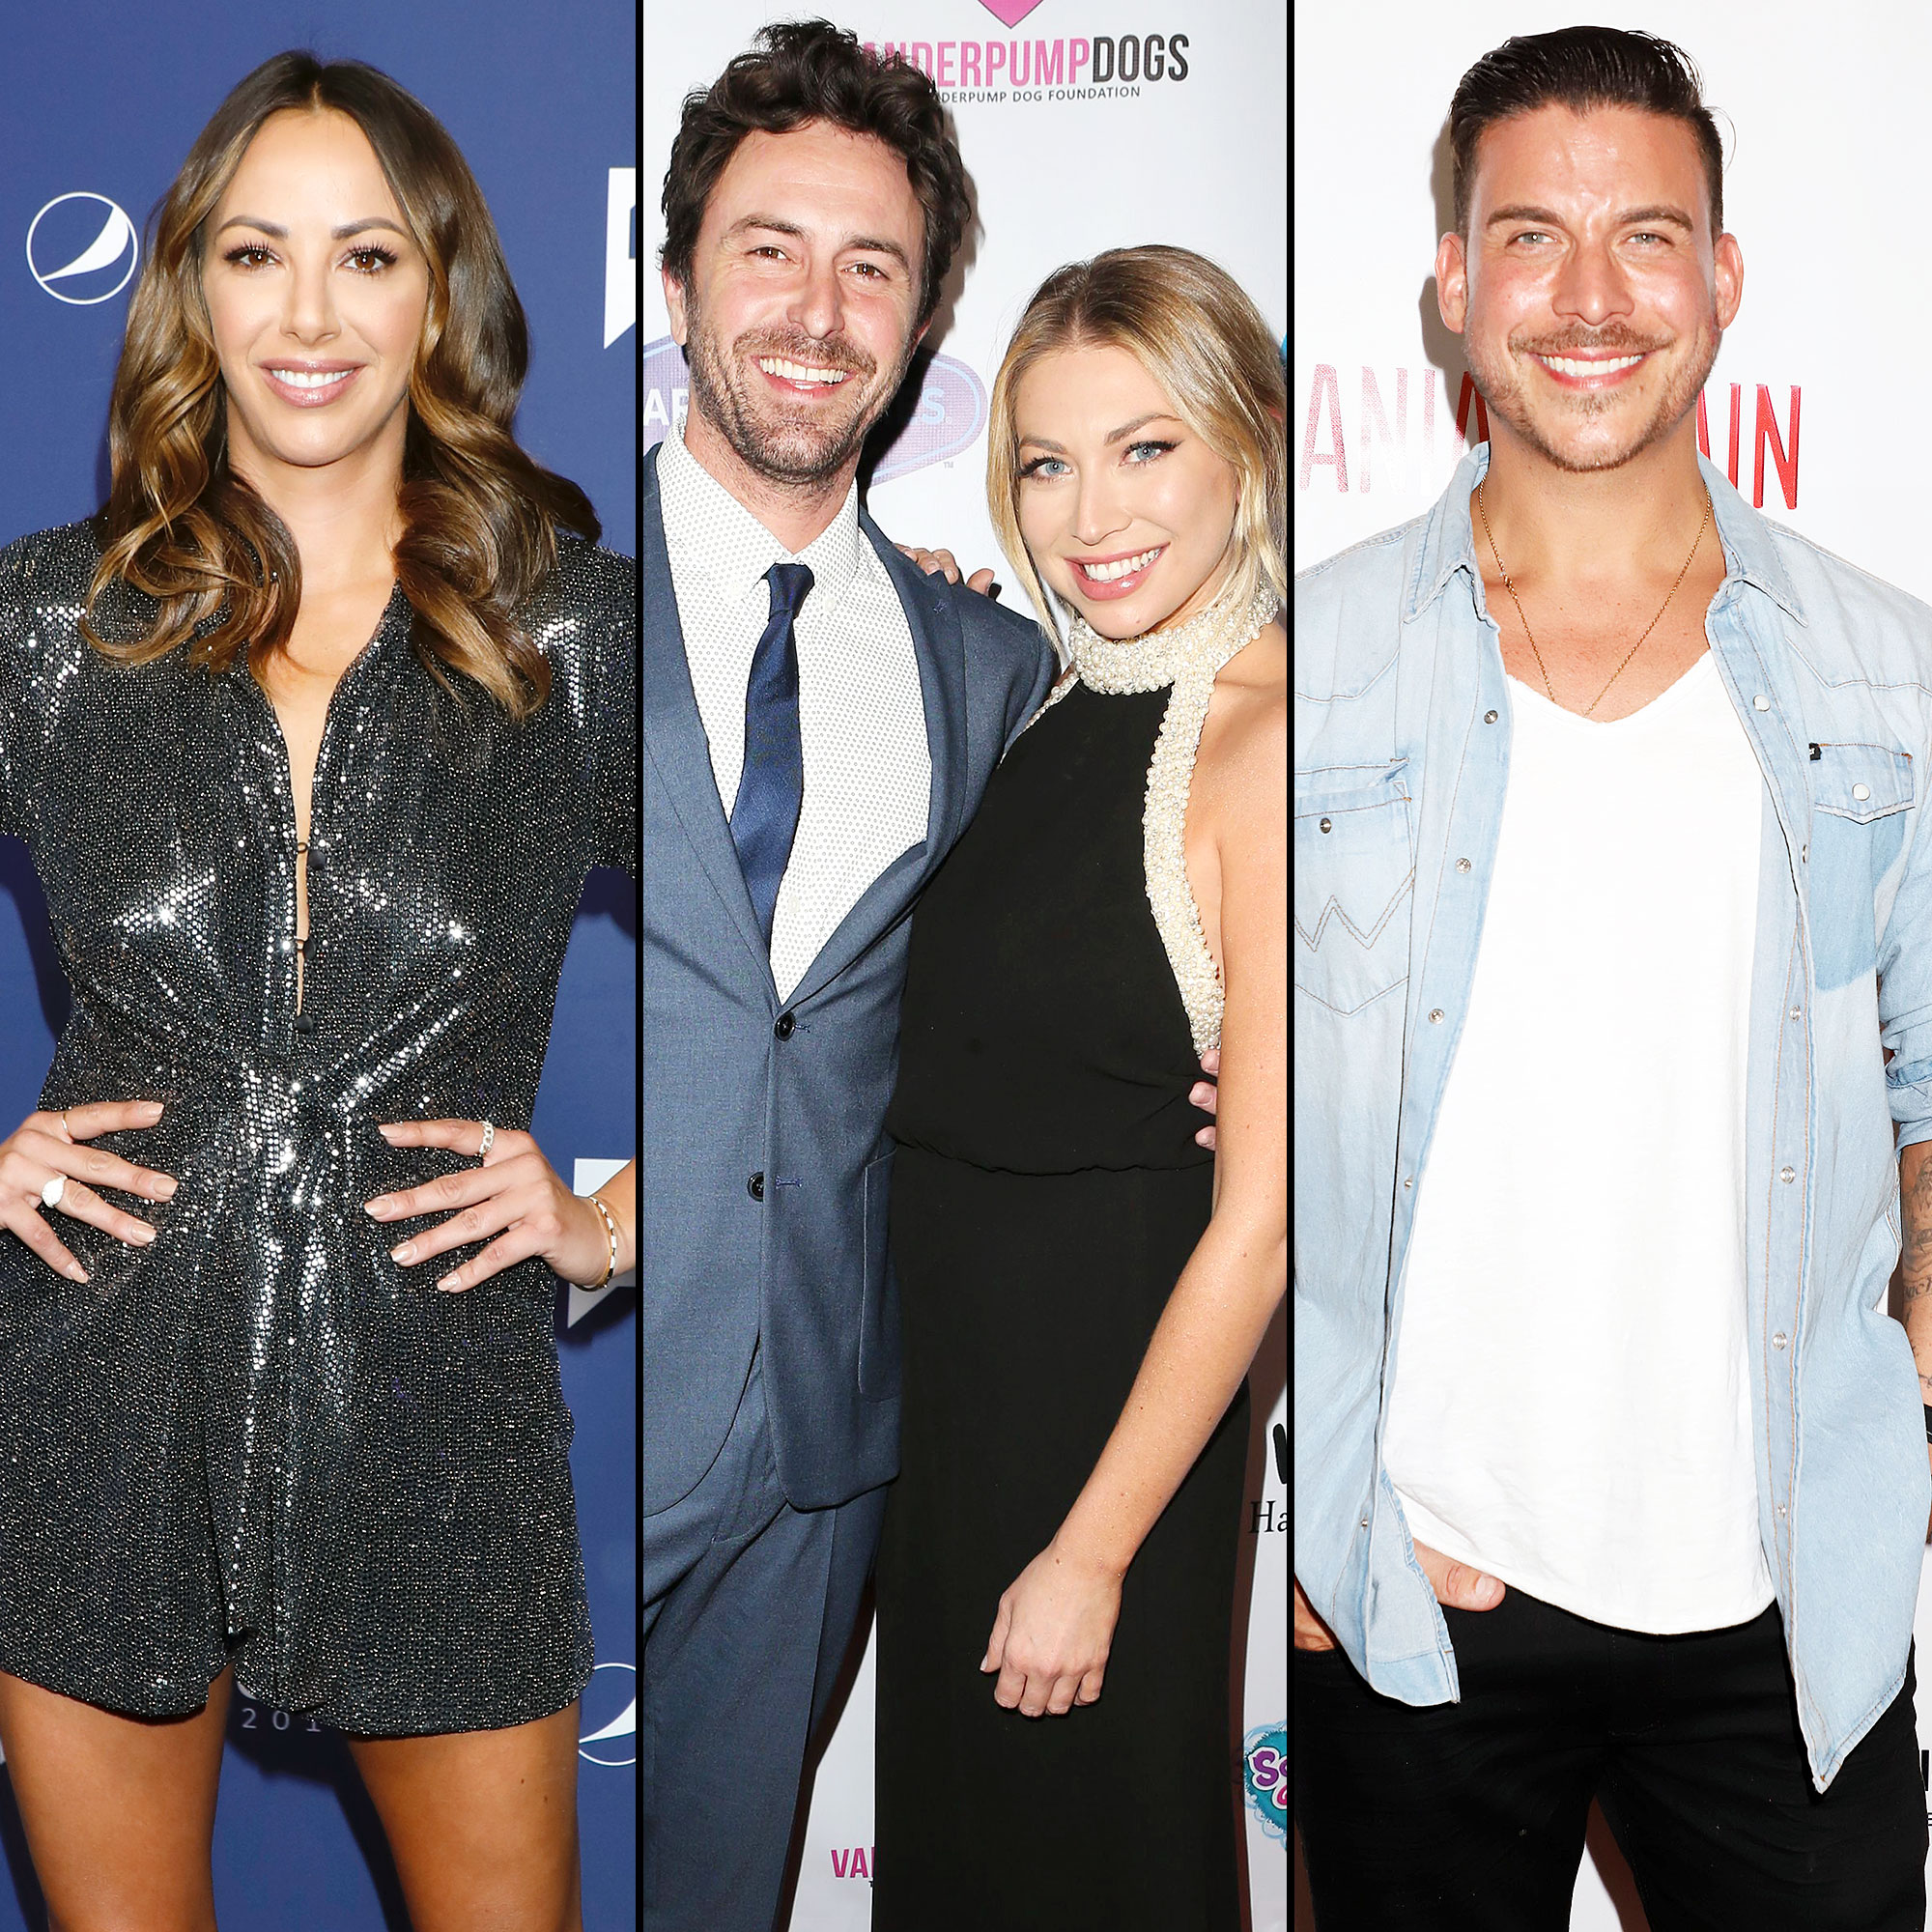 Kristen, Jax and More Attended Stassi and Beau's Wedding: What We Know